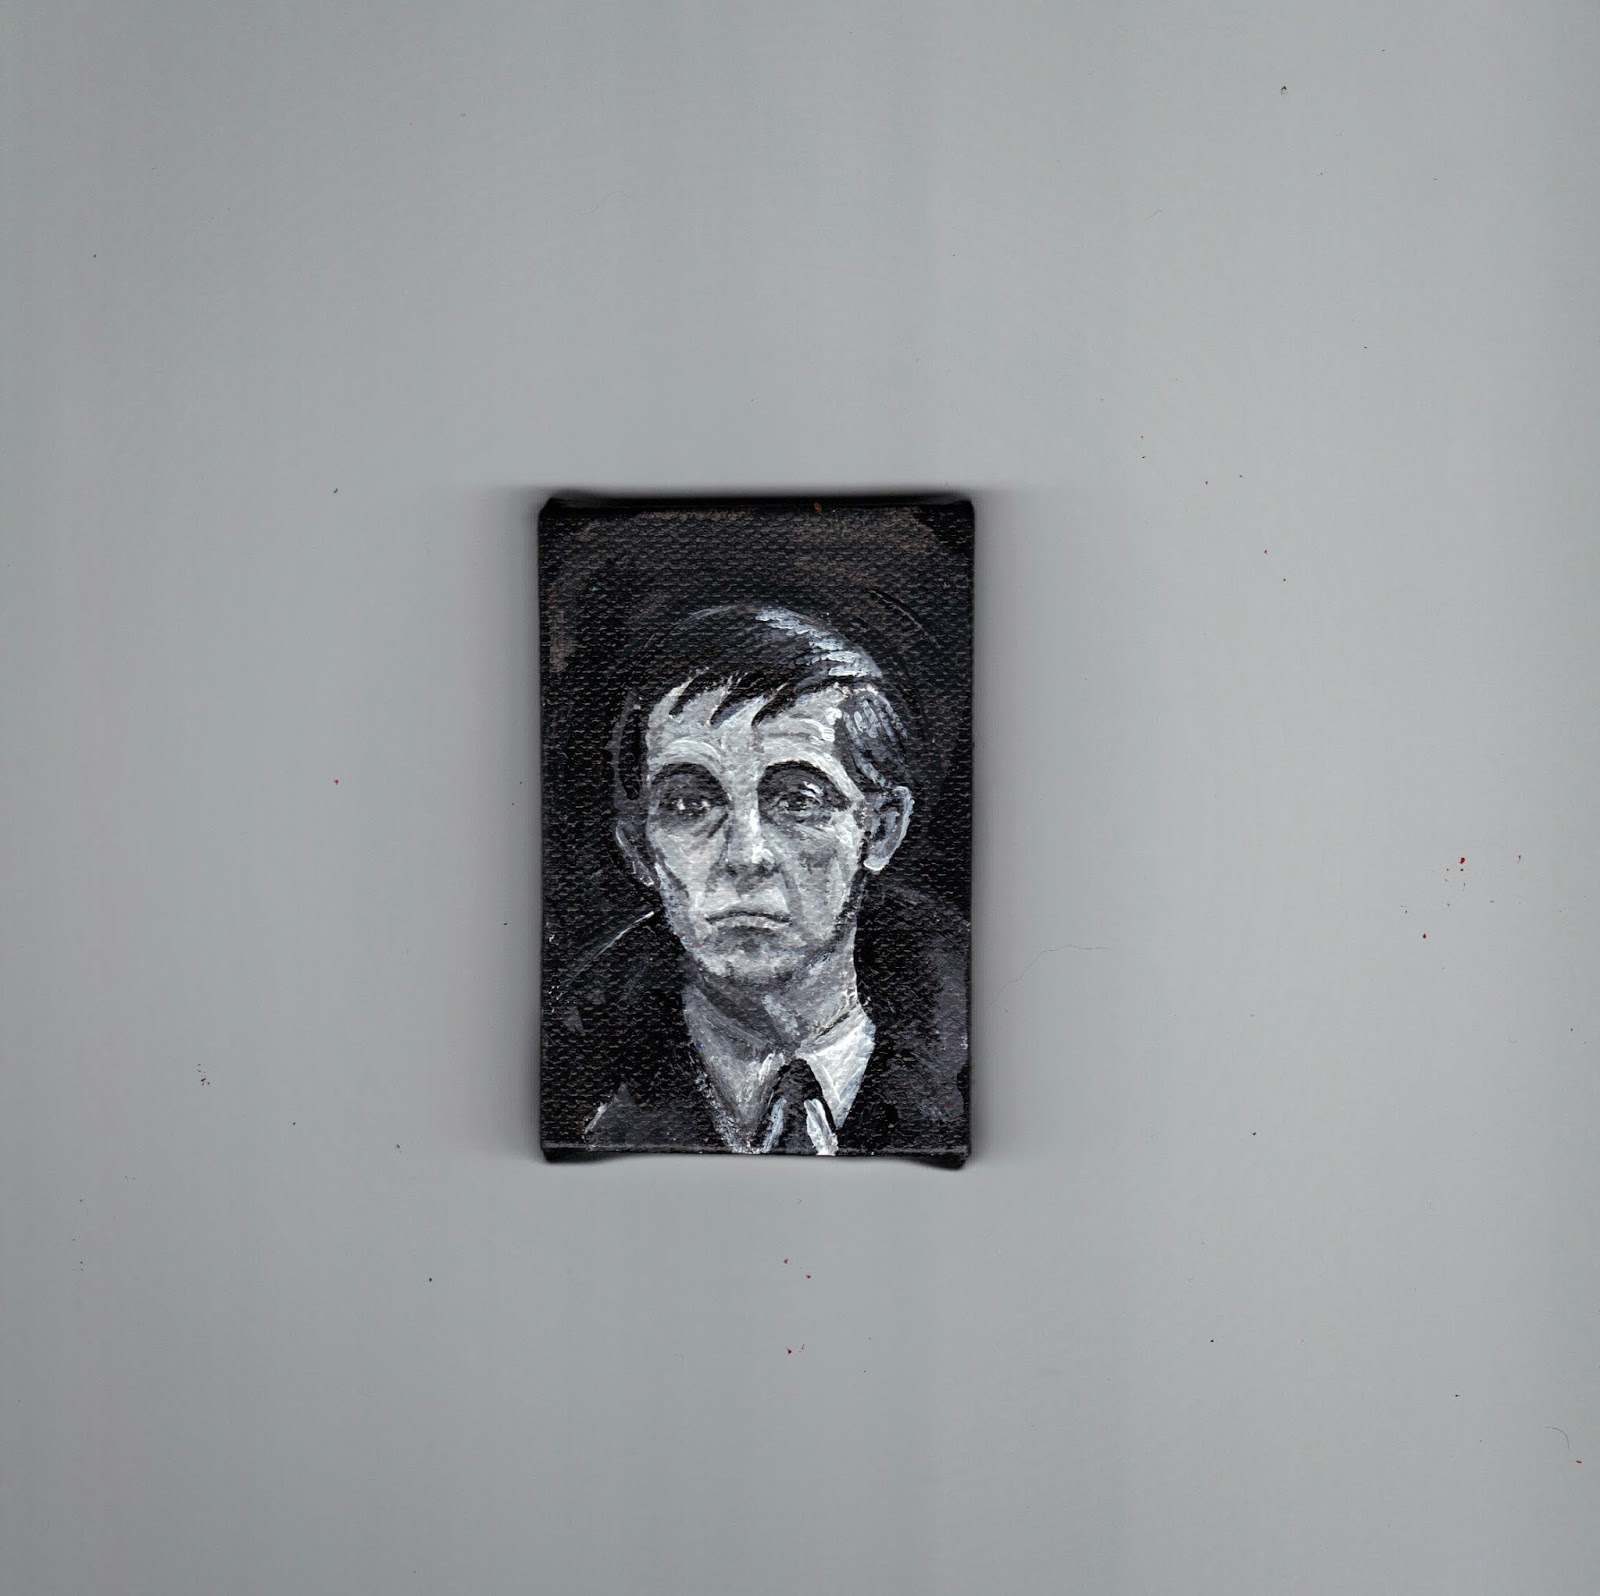 https://www.etsy.com/listing/173126599/miniature-painting-original-art-barnabas?ref=listing-shop-header-3